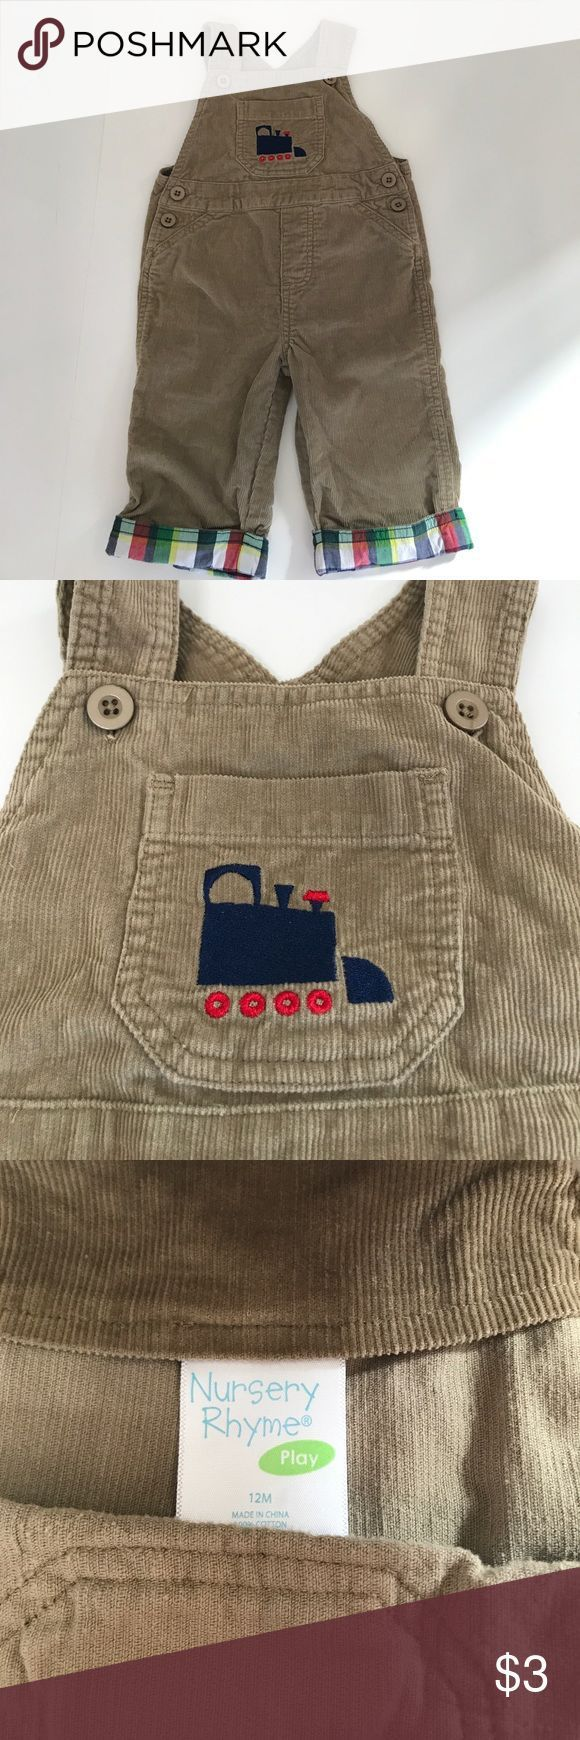 Tendance salopette 2017  EUC Bundle Baby to Save on Ship! EUC! One of my favorite beige corduroy overalls